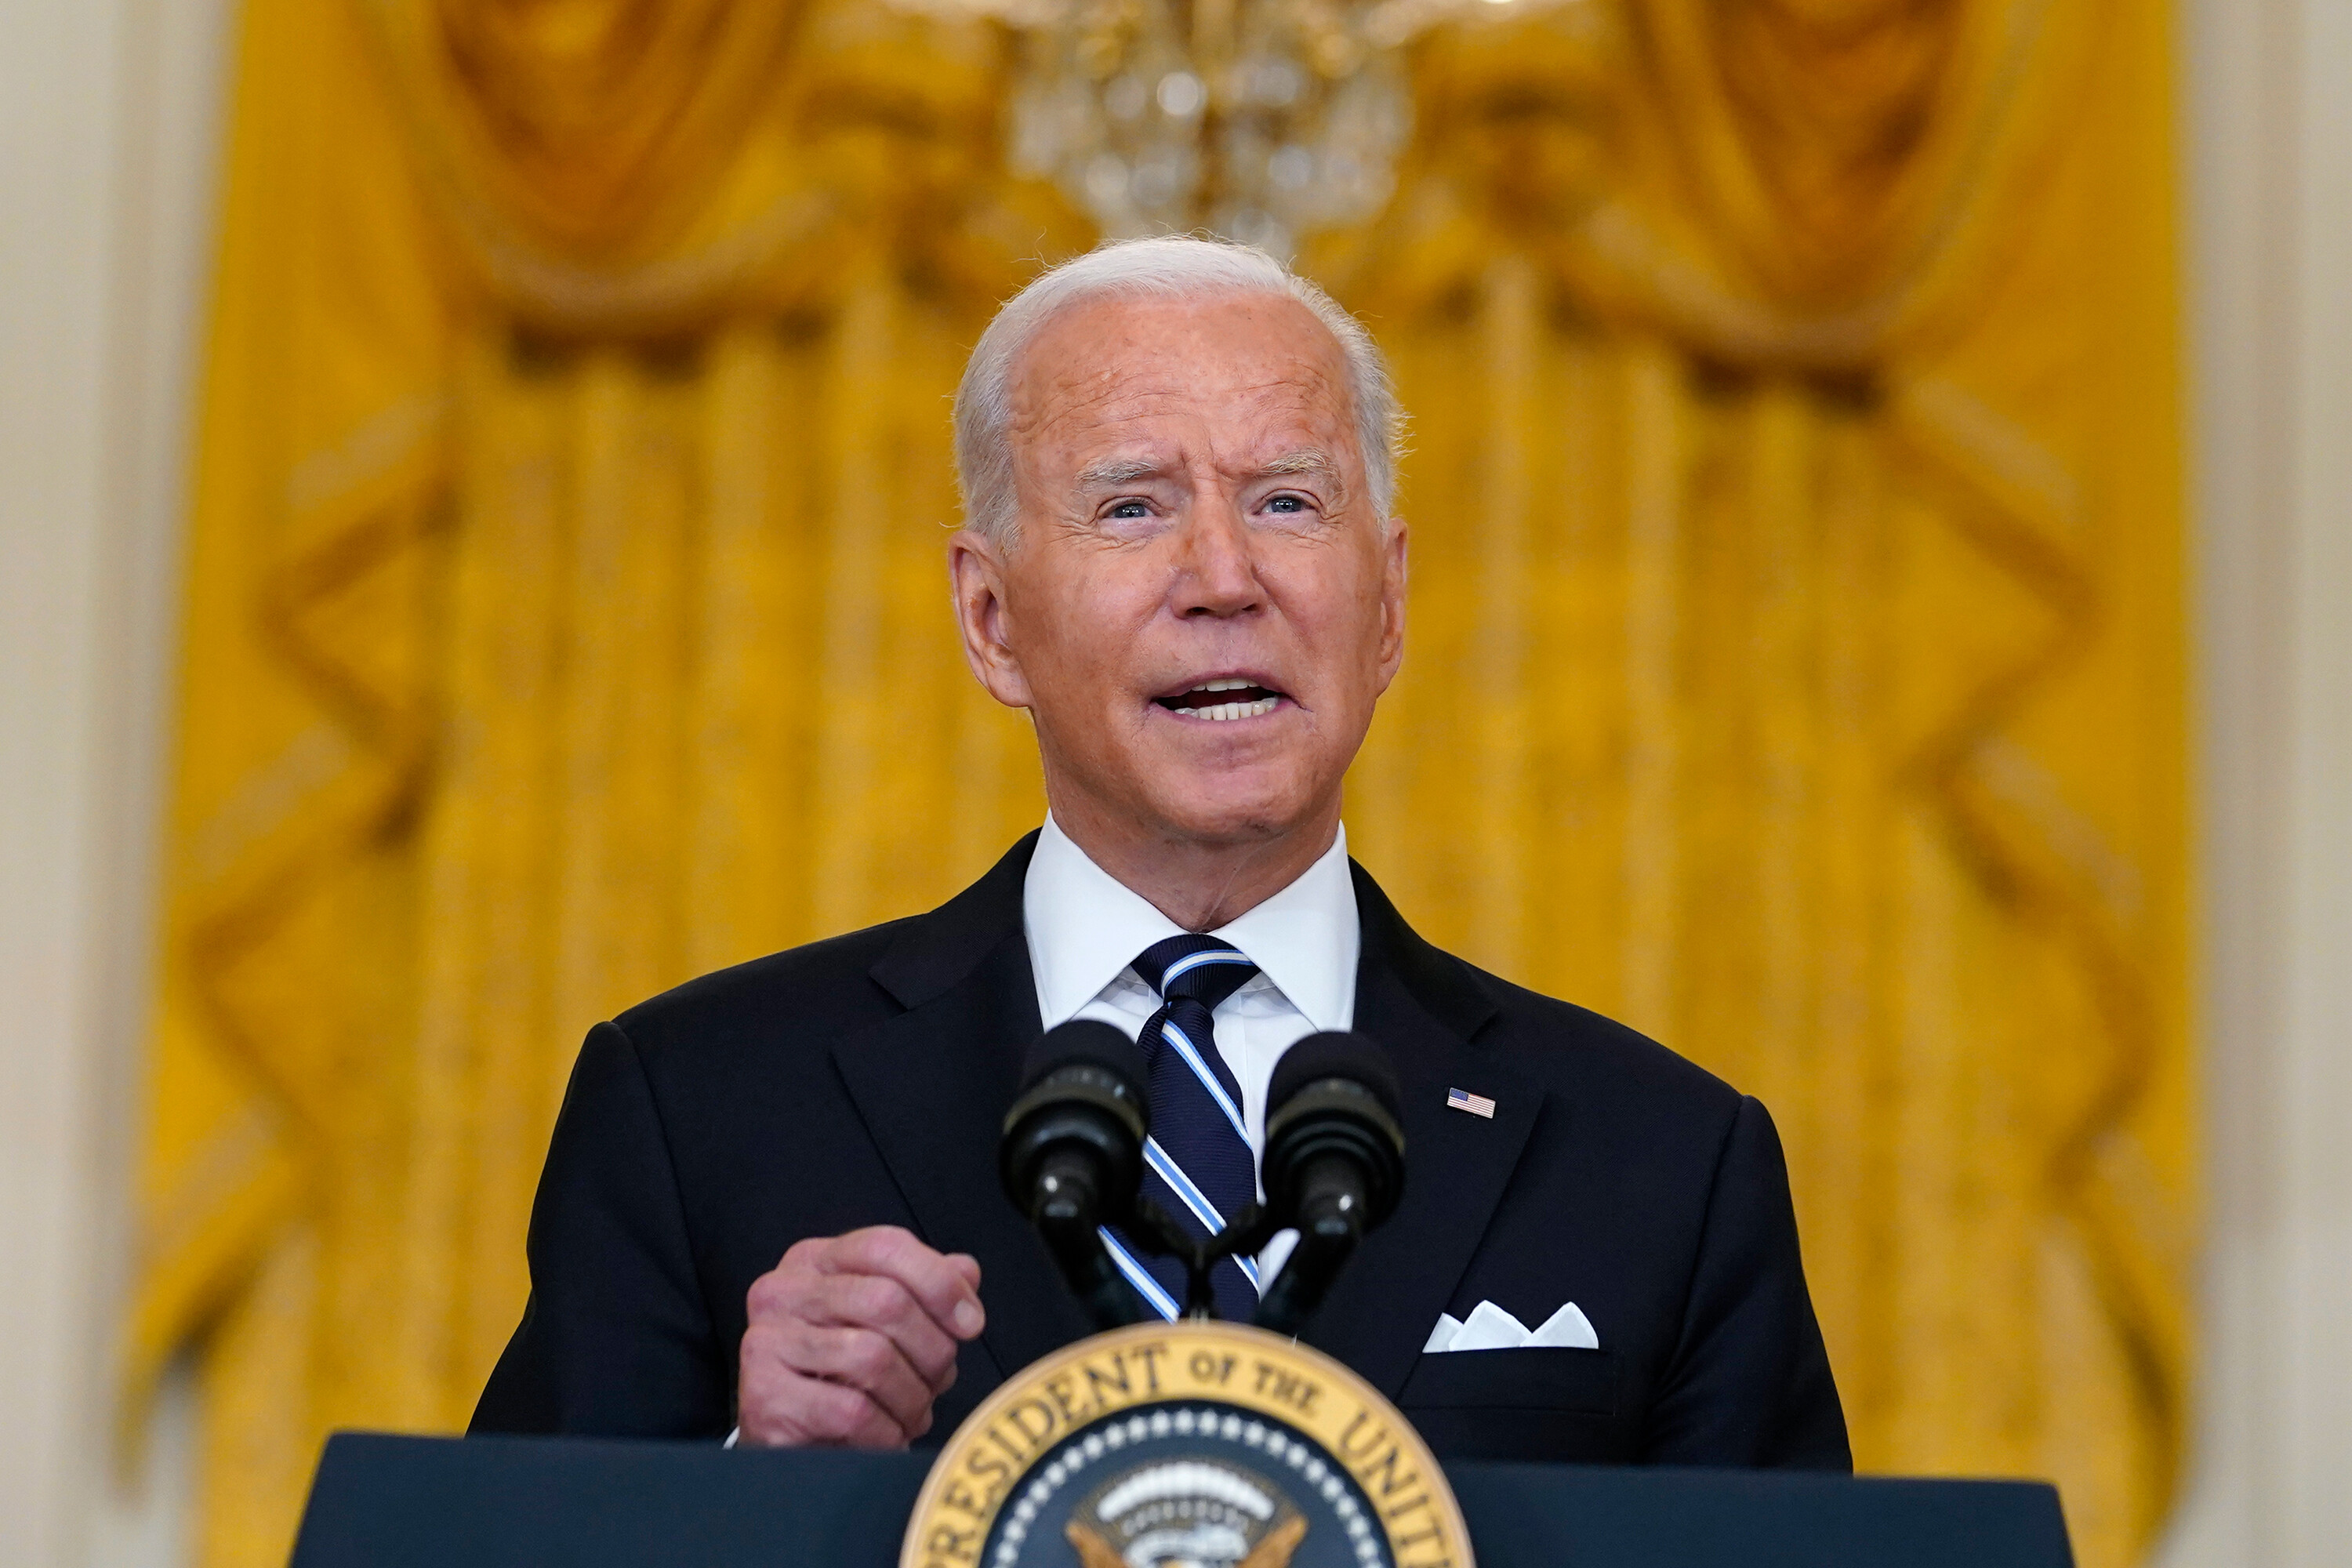 President and first lady plan to get their Covid-19 vaccine booster shots once they're eligible, Biden says